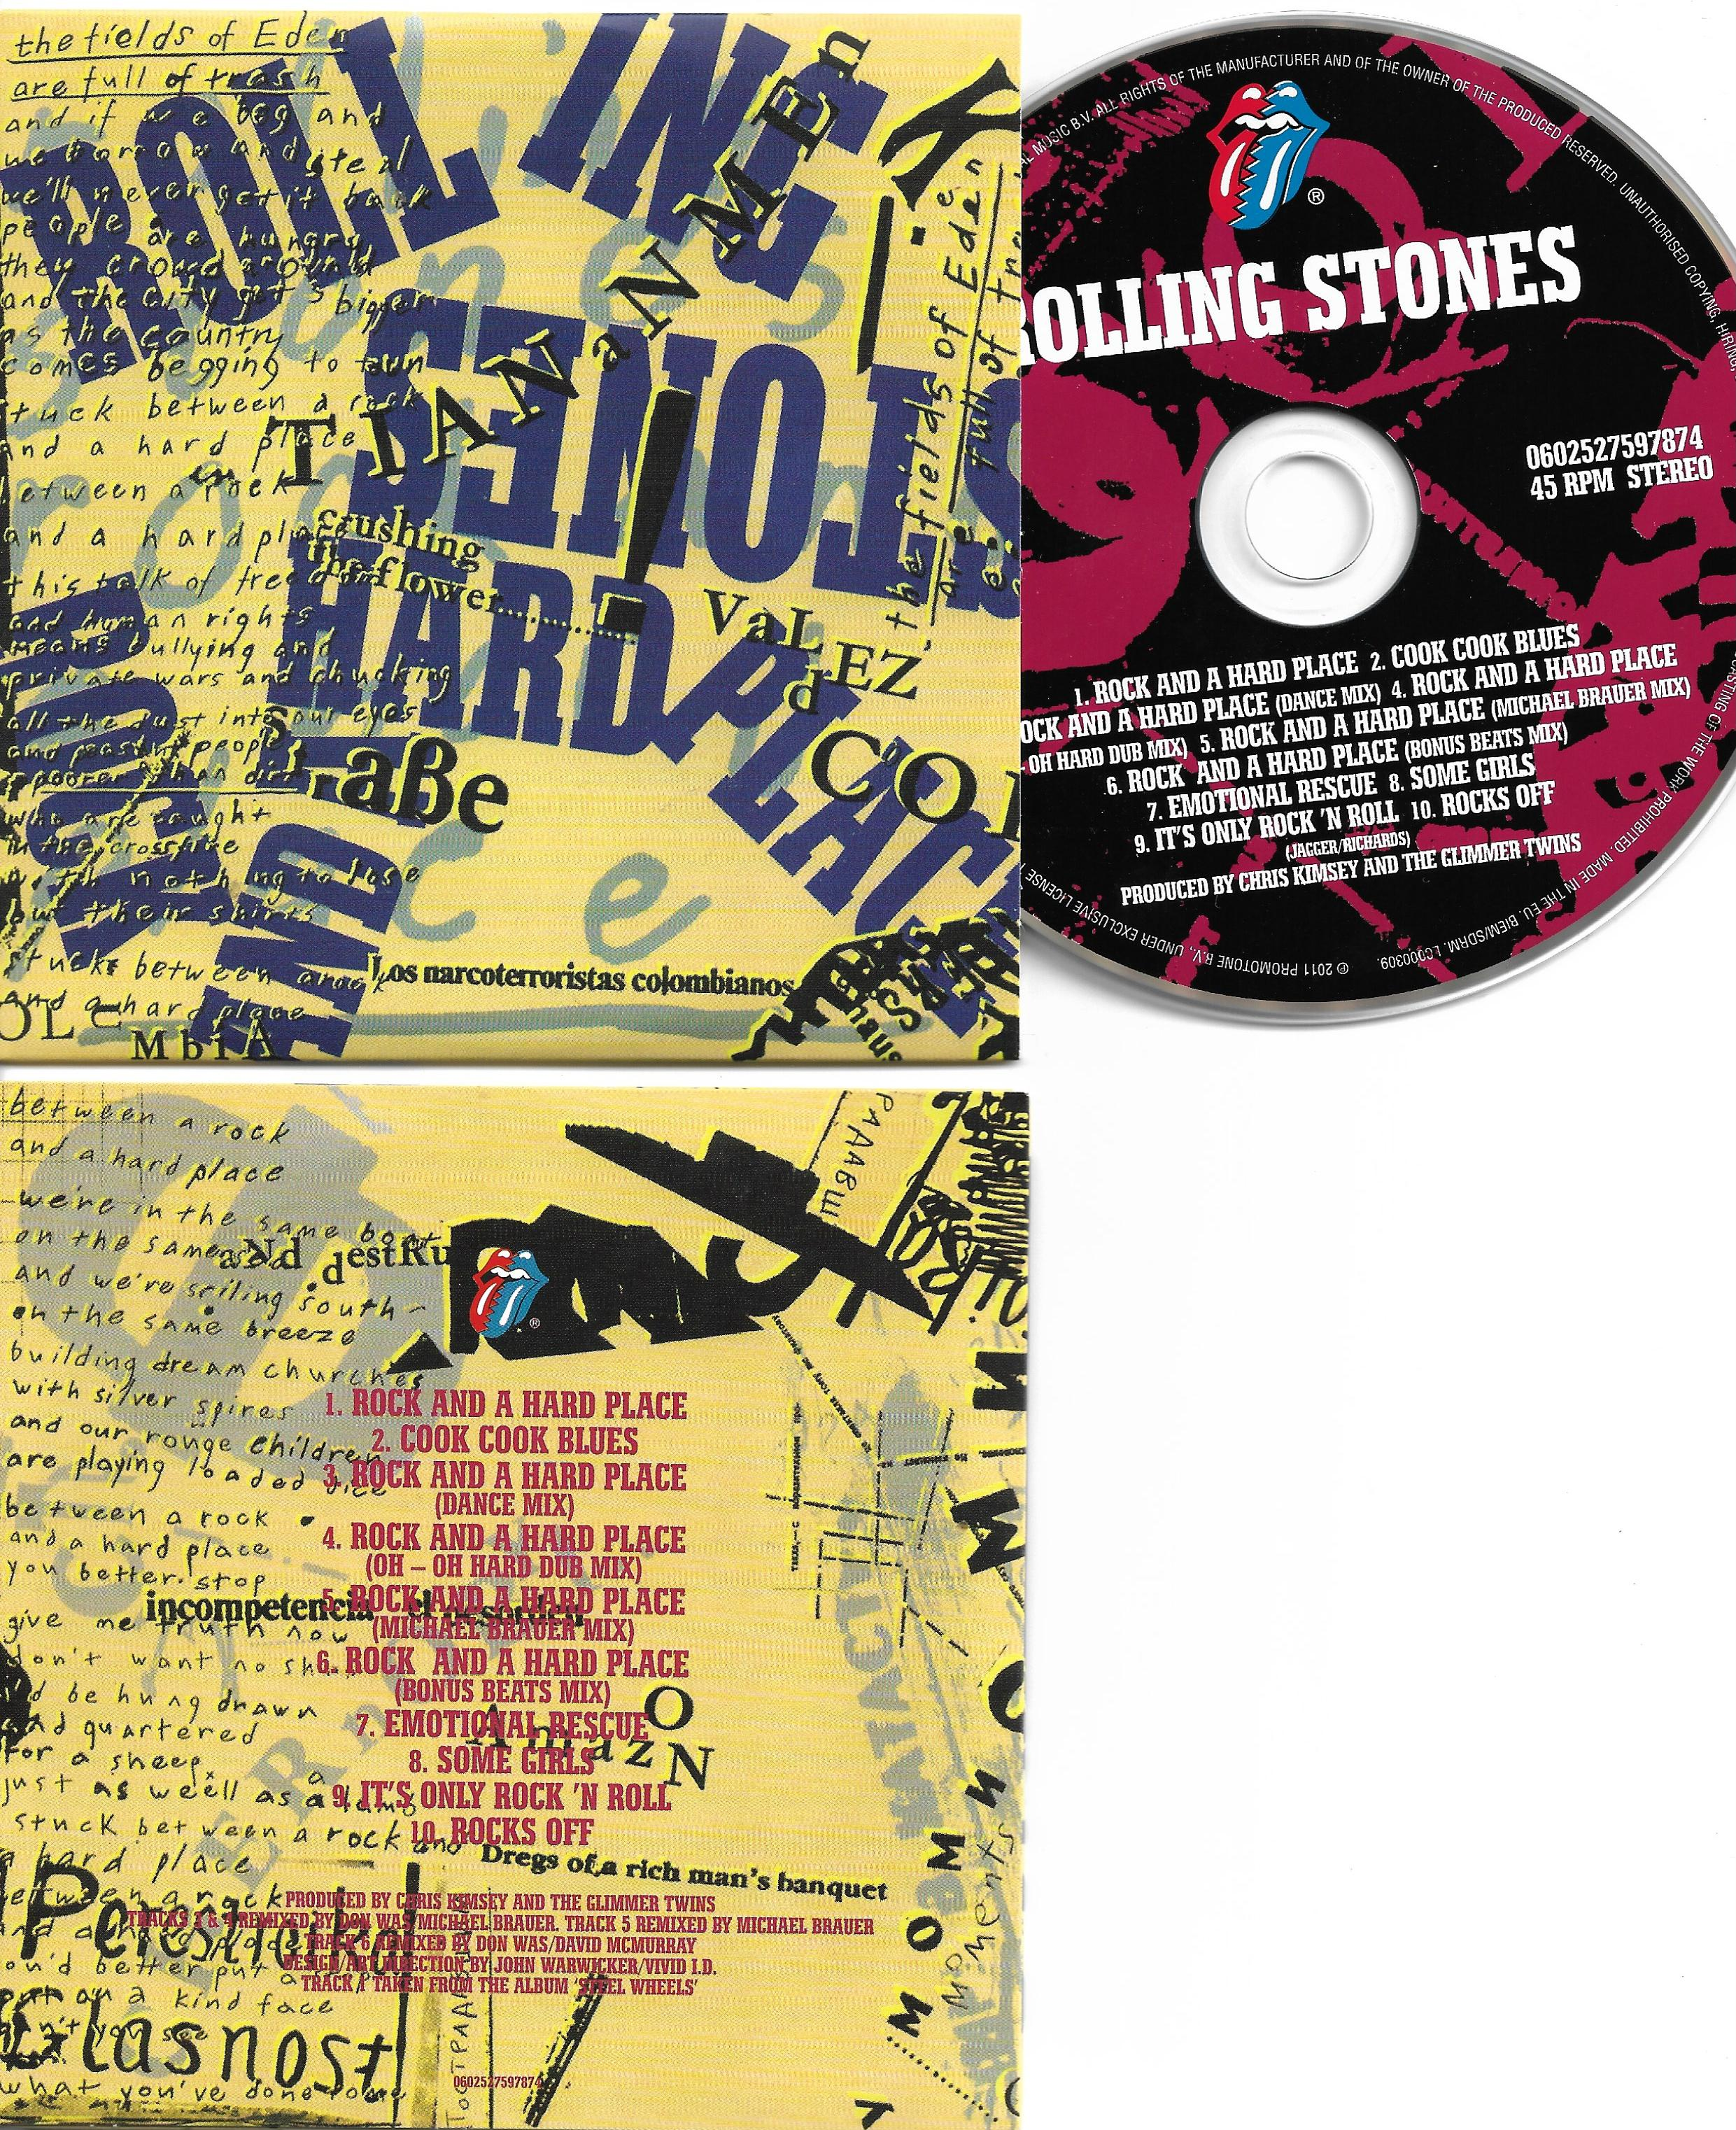 THE ROLLING STONES - Rock and a hard place - REMIXES - 10-track CARD SLEEVE - CD single